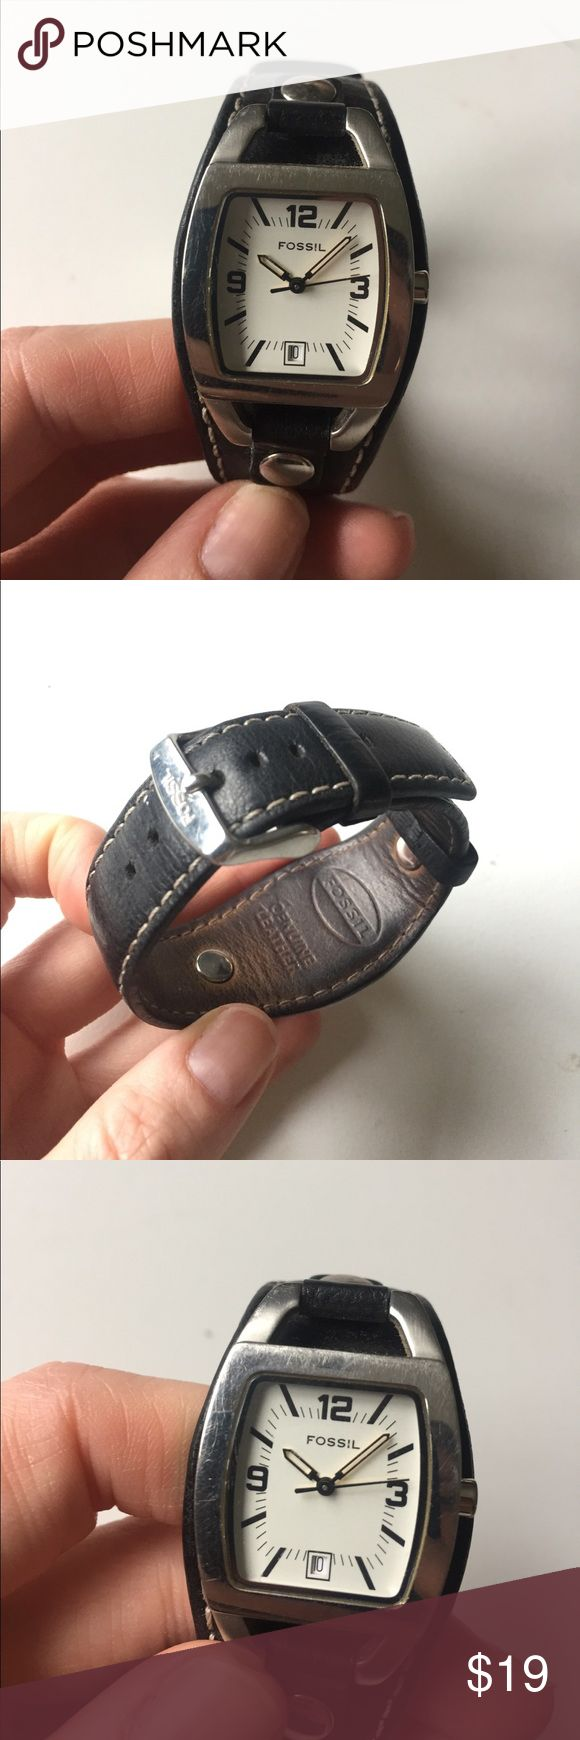 Black leather Fossil watch Older but still in great condition. Minor scratches on the face. See pic. Battery is dead. 😂 Accessories Watches